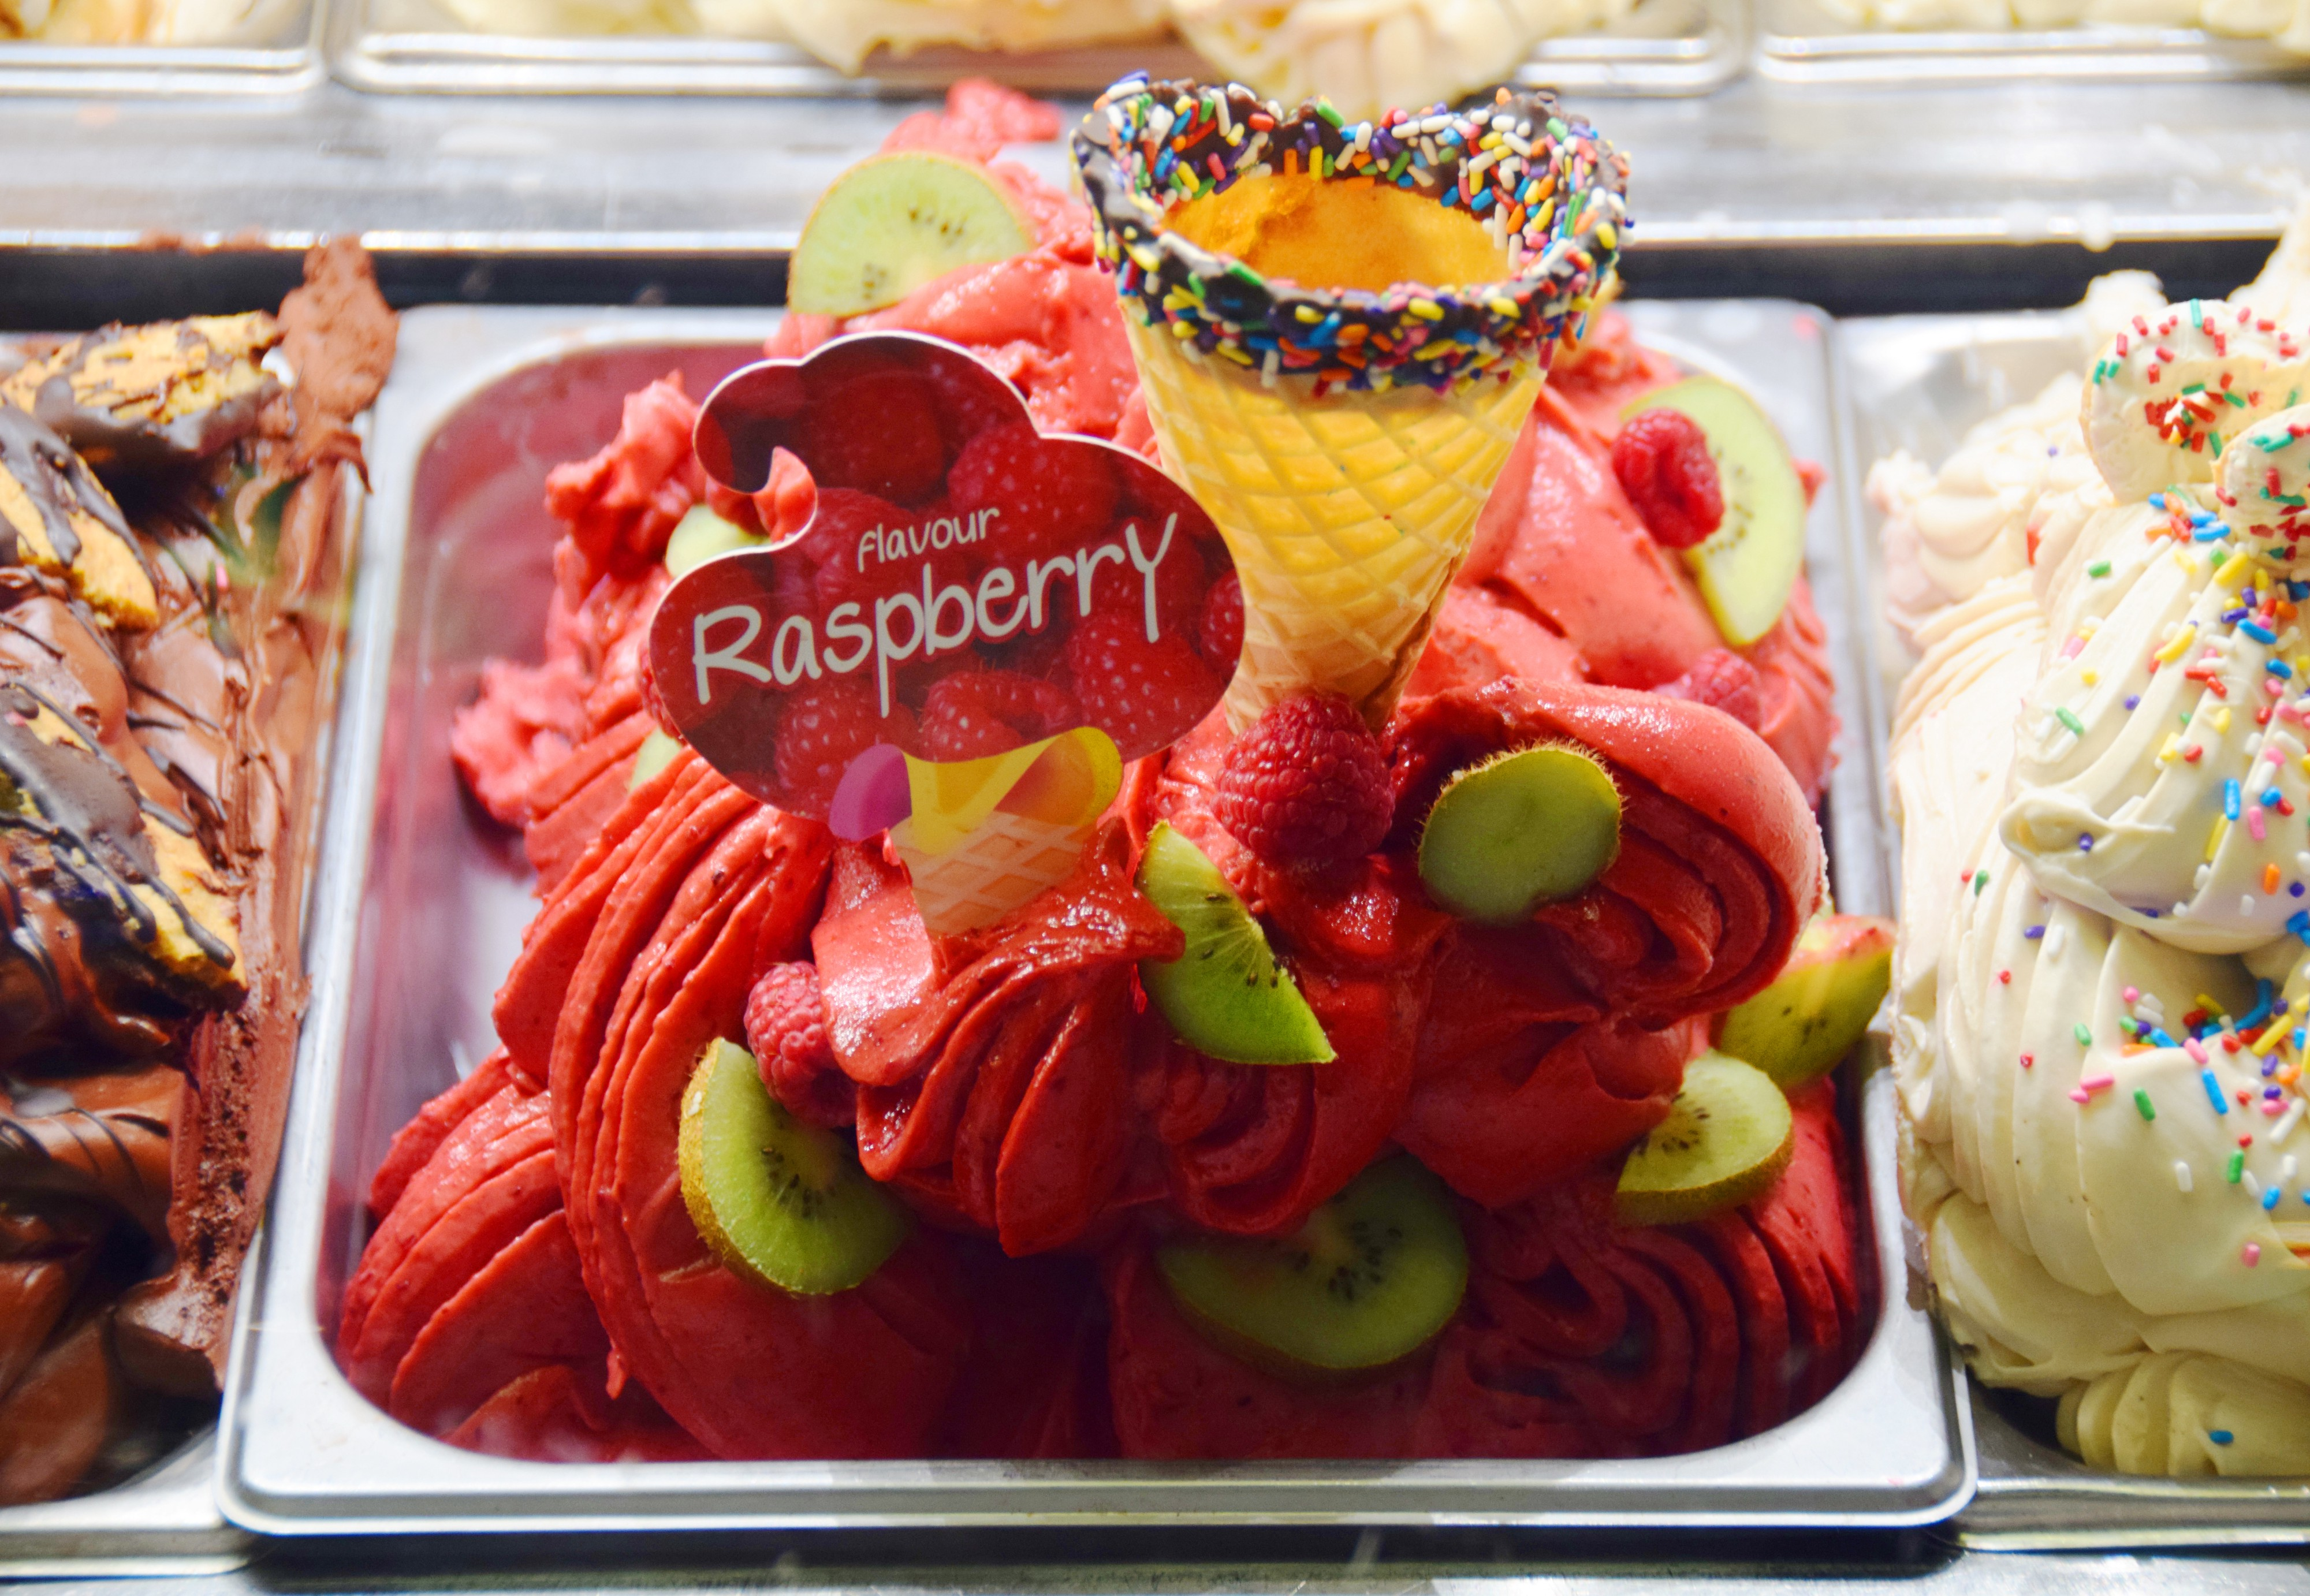 A dish of bright pink whipped raspberry sorbet with kiwi